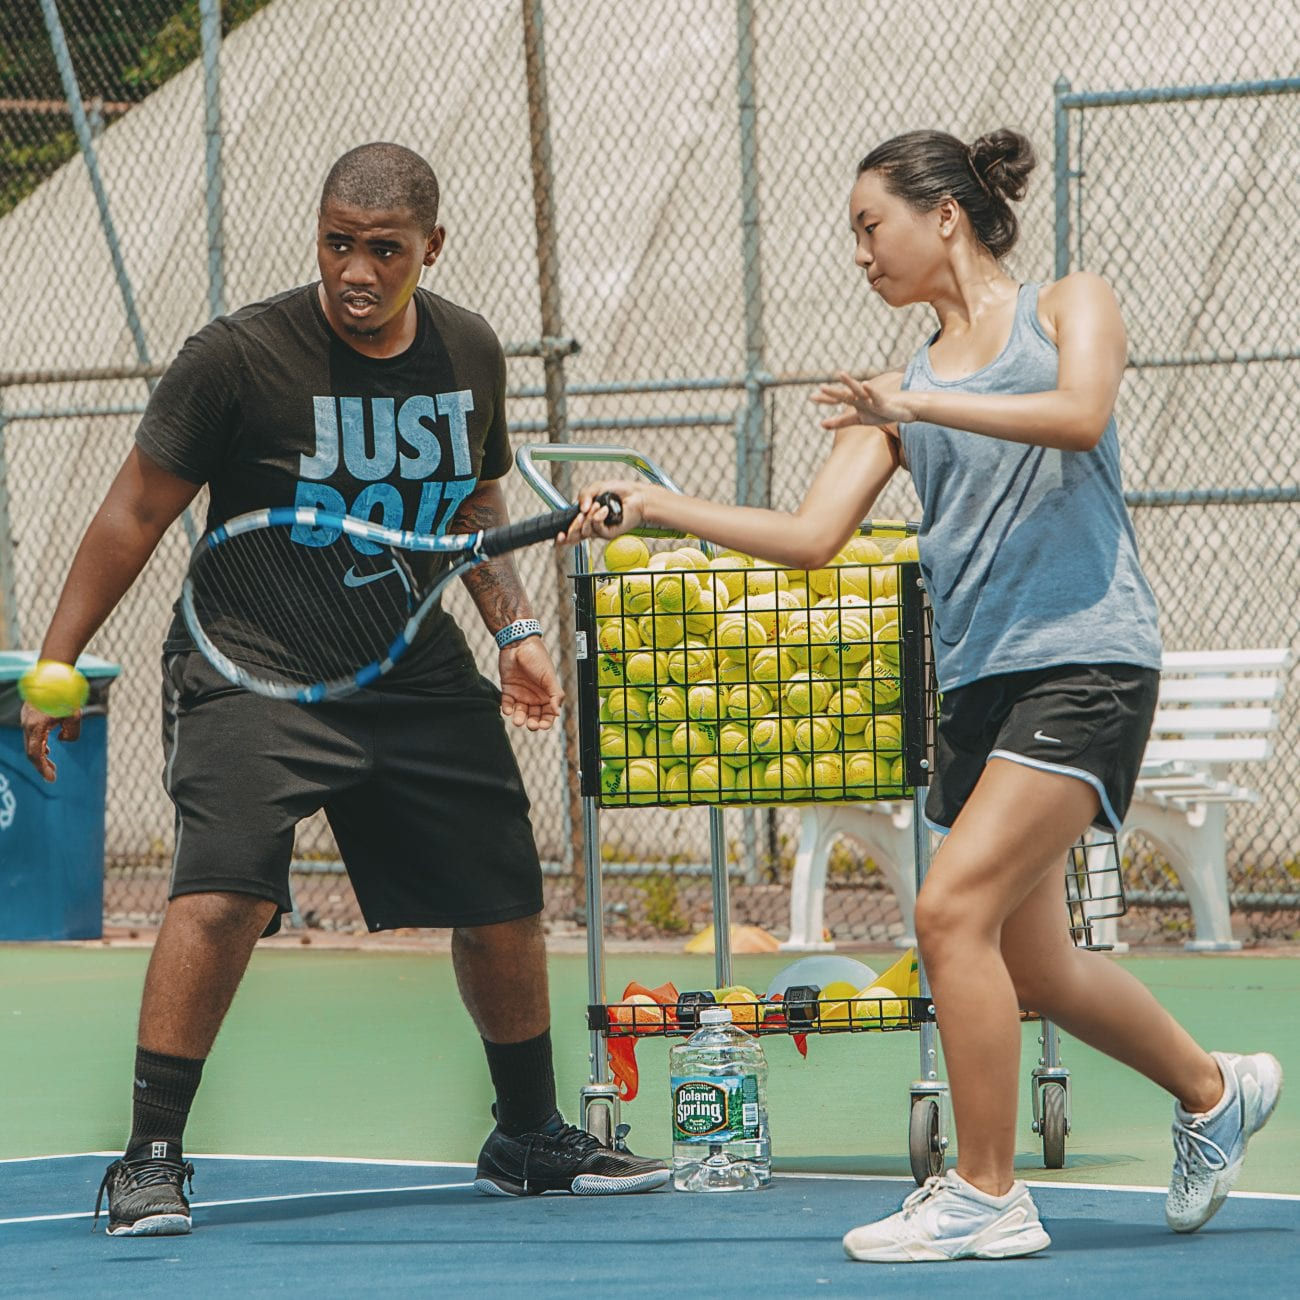 Cherry Hill junior tennis lessons